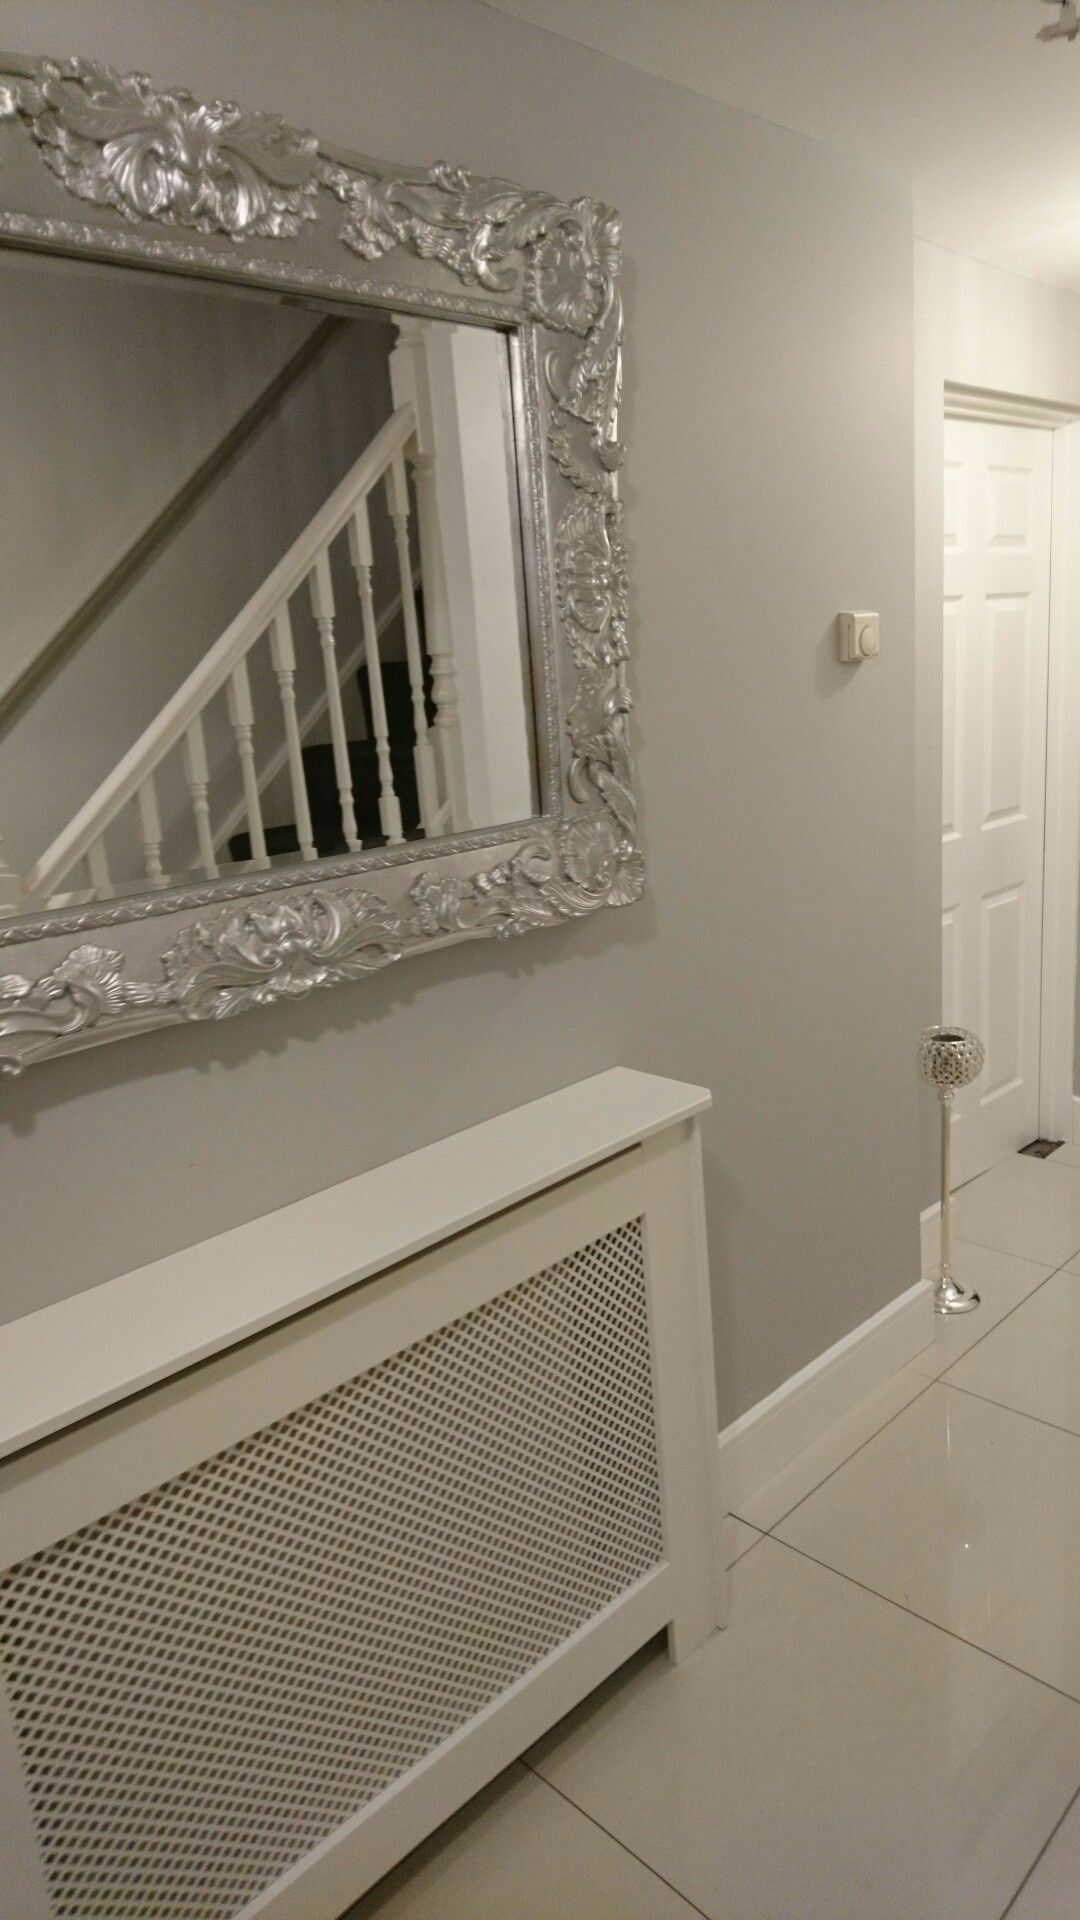 Dulux chic shadow So light and airy Calm clean grey